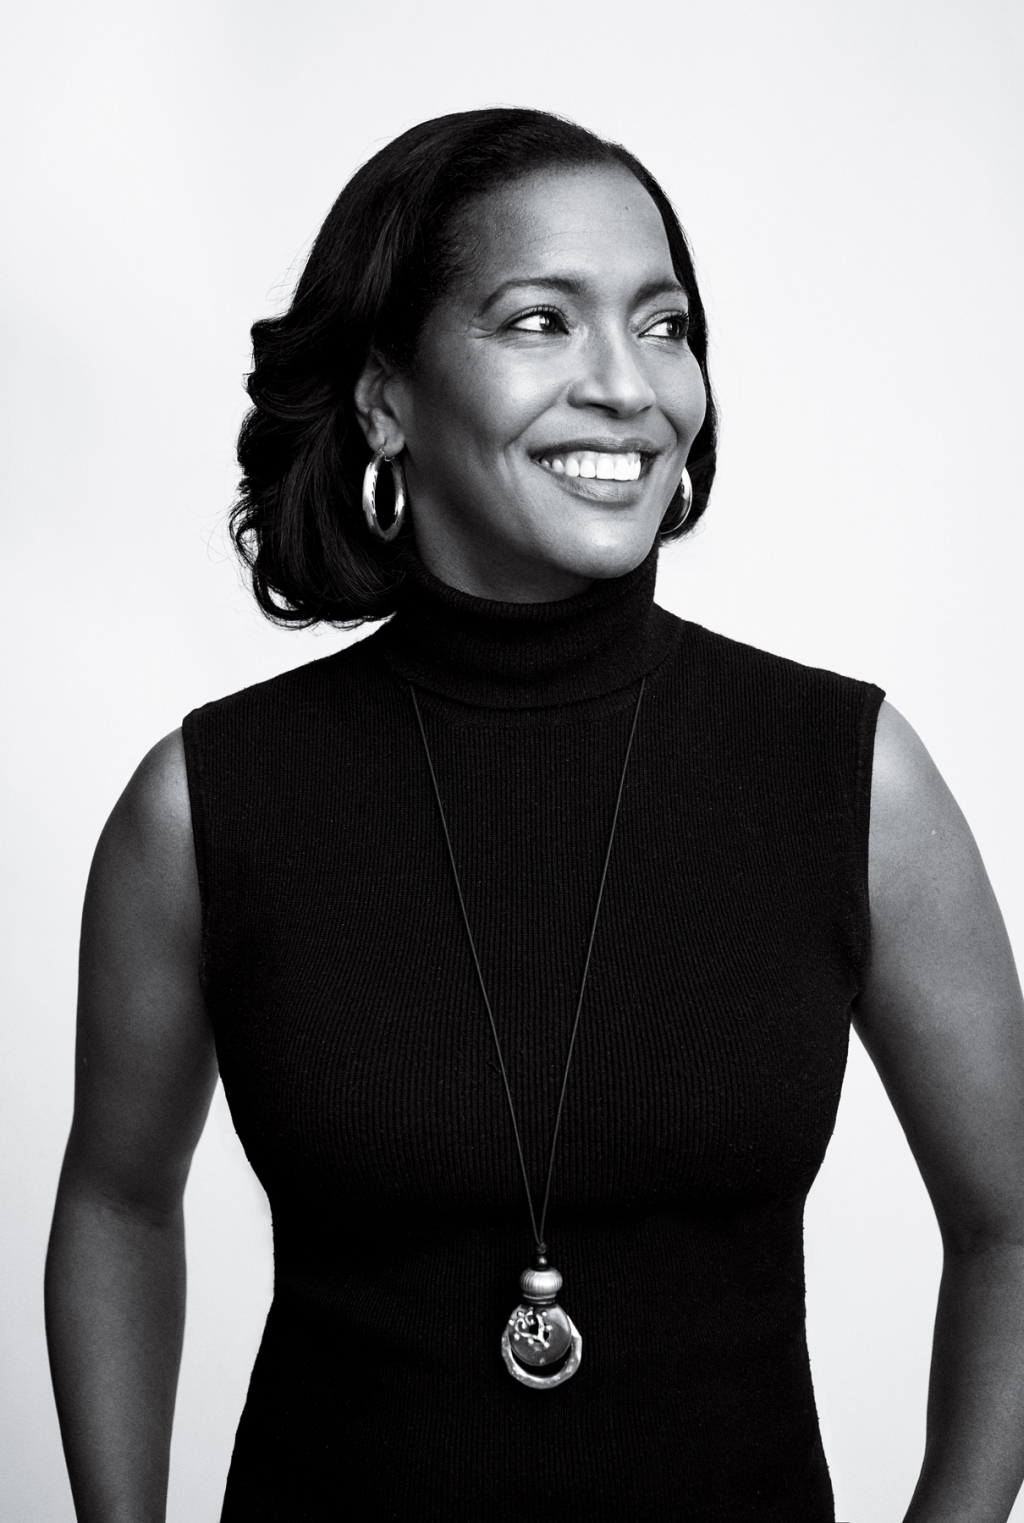 """""""I never expected to win,"""" saysJahana Hayes, the first African-American woman to represent Connecticut inCongress. """"I thought it would be a damn good try, and people would get encouraged, and then the next time someone else would do it."""" Read the Story"""